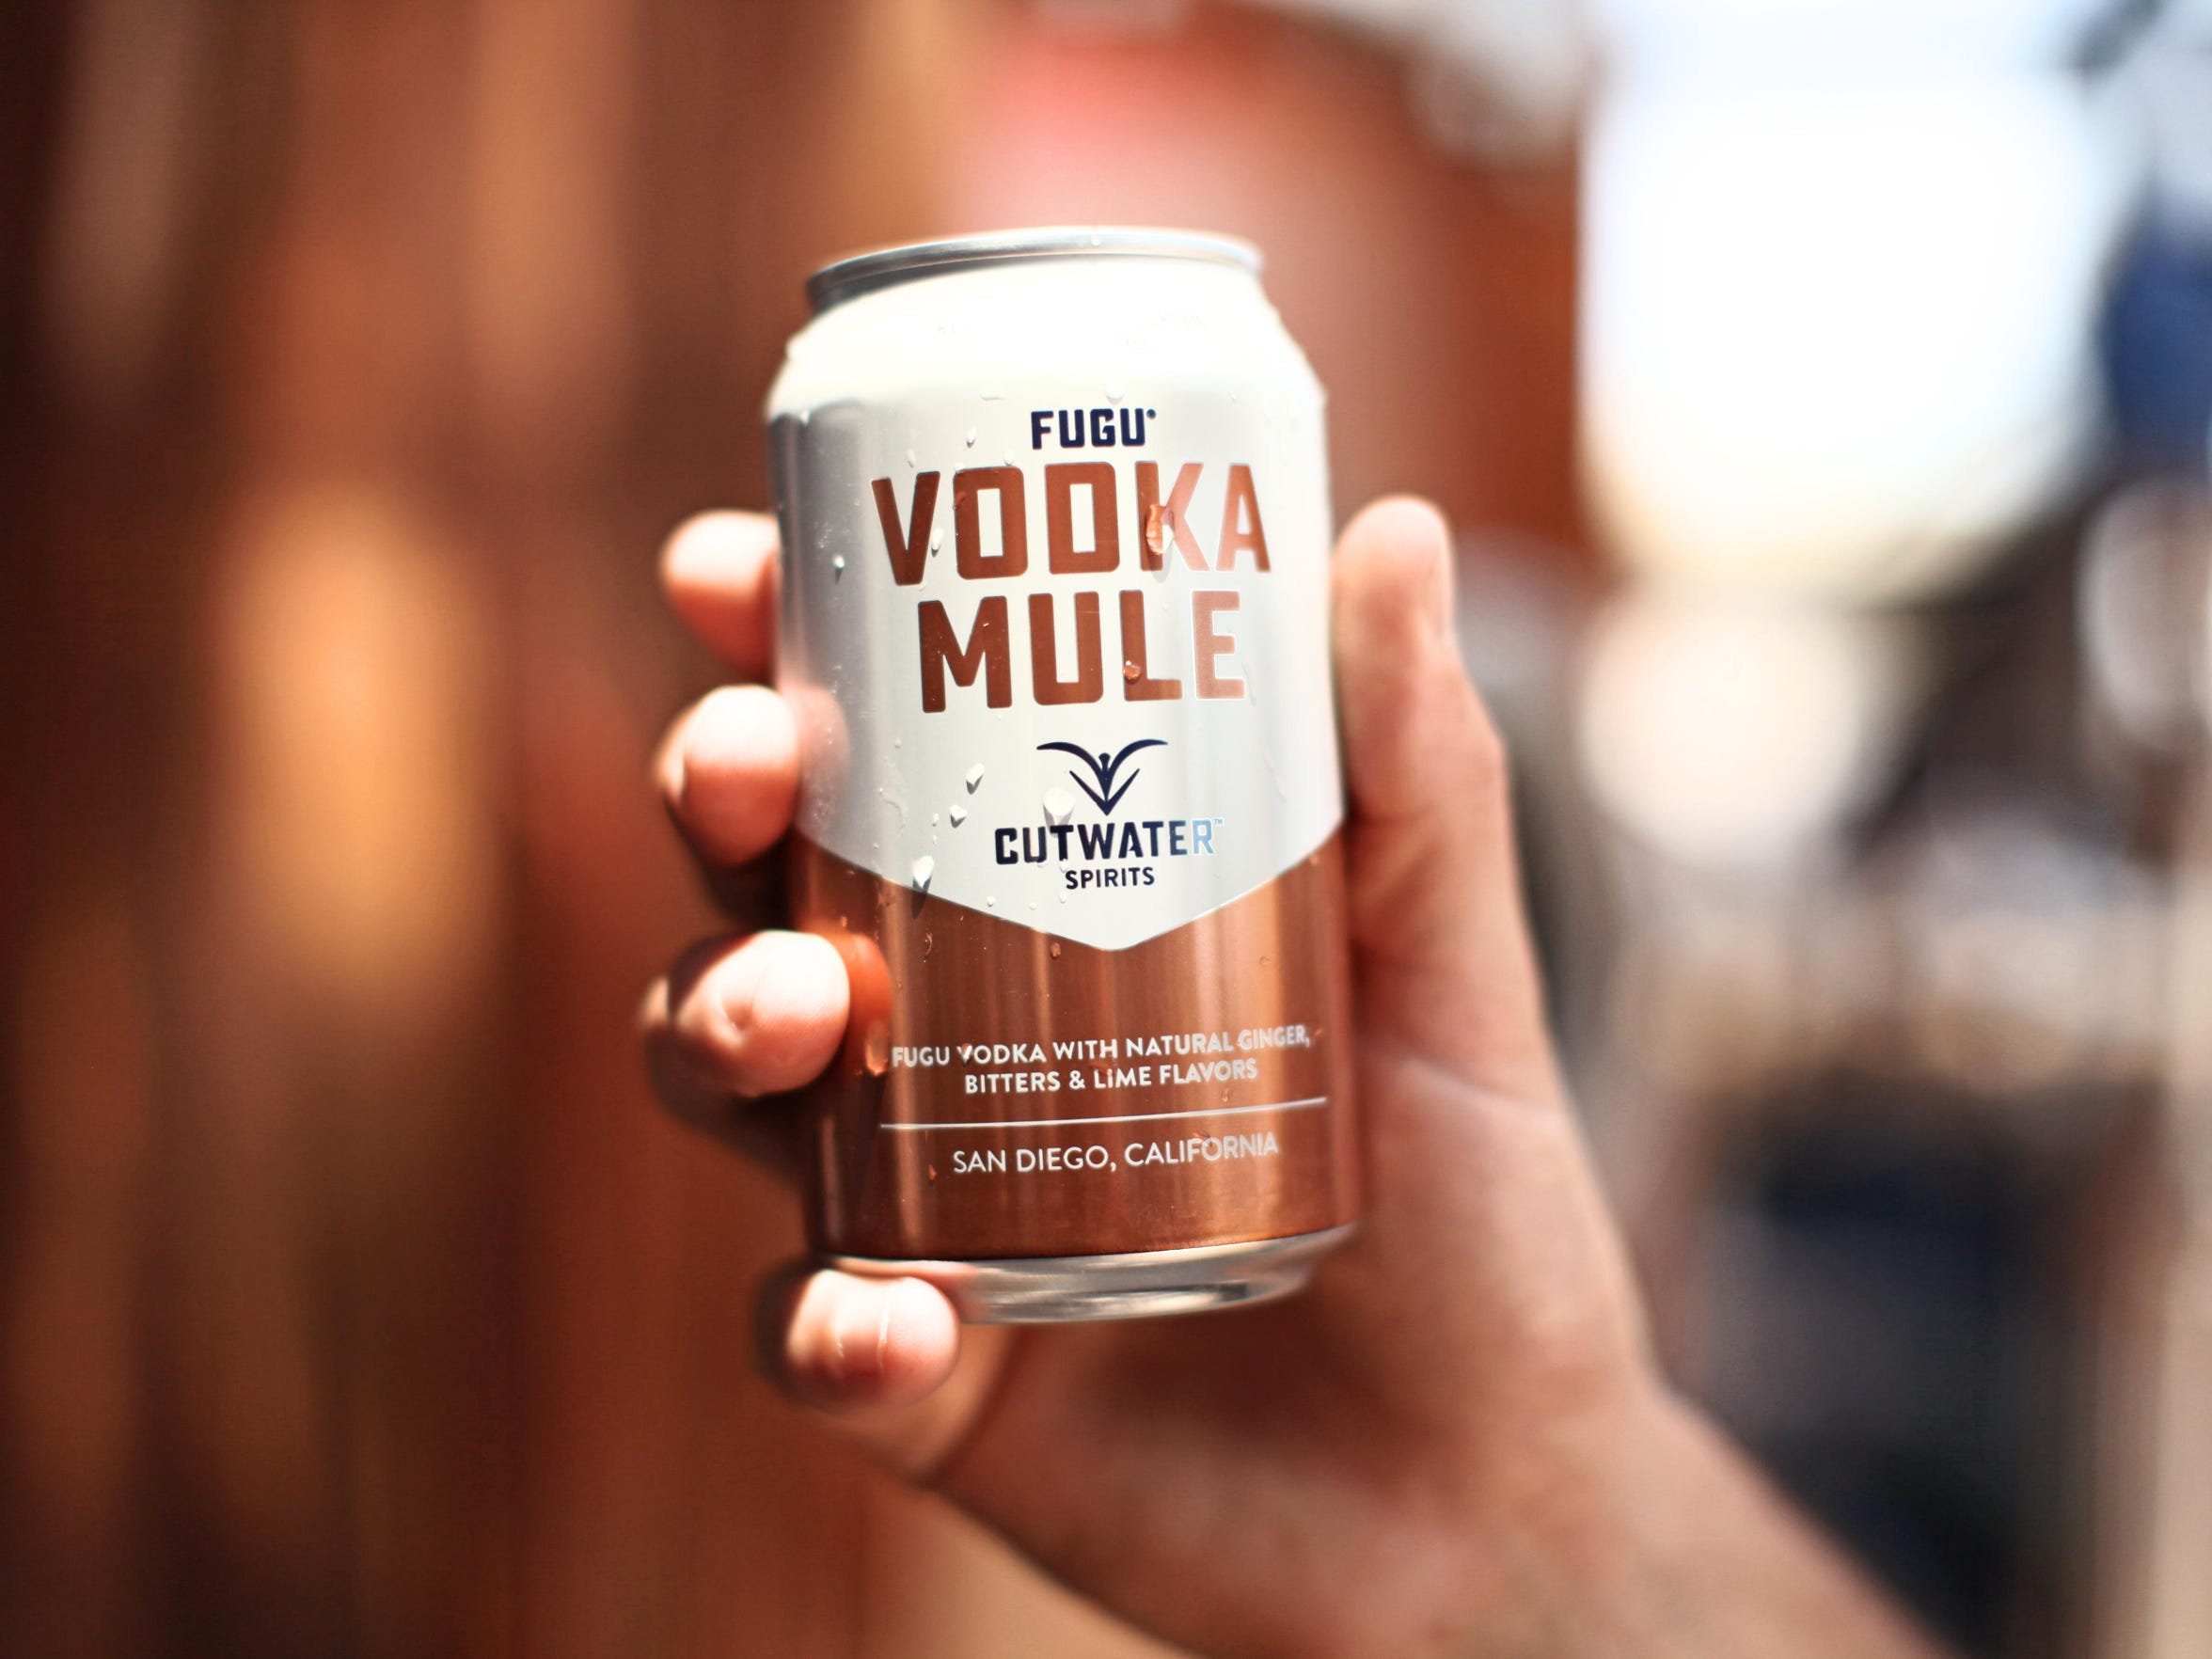 The Vodka Mule is one of 10 canned cocktails made by Cutwater Spirits, a San Diego craft distillery starring at Canfest on Aug. 26 at Grand Sierra Resort and Casino.